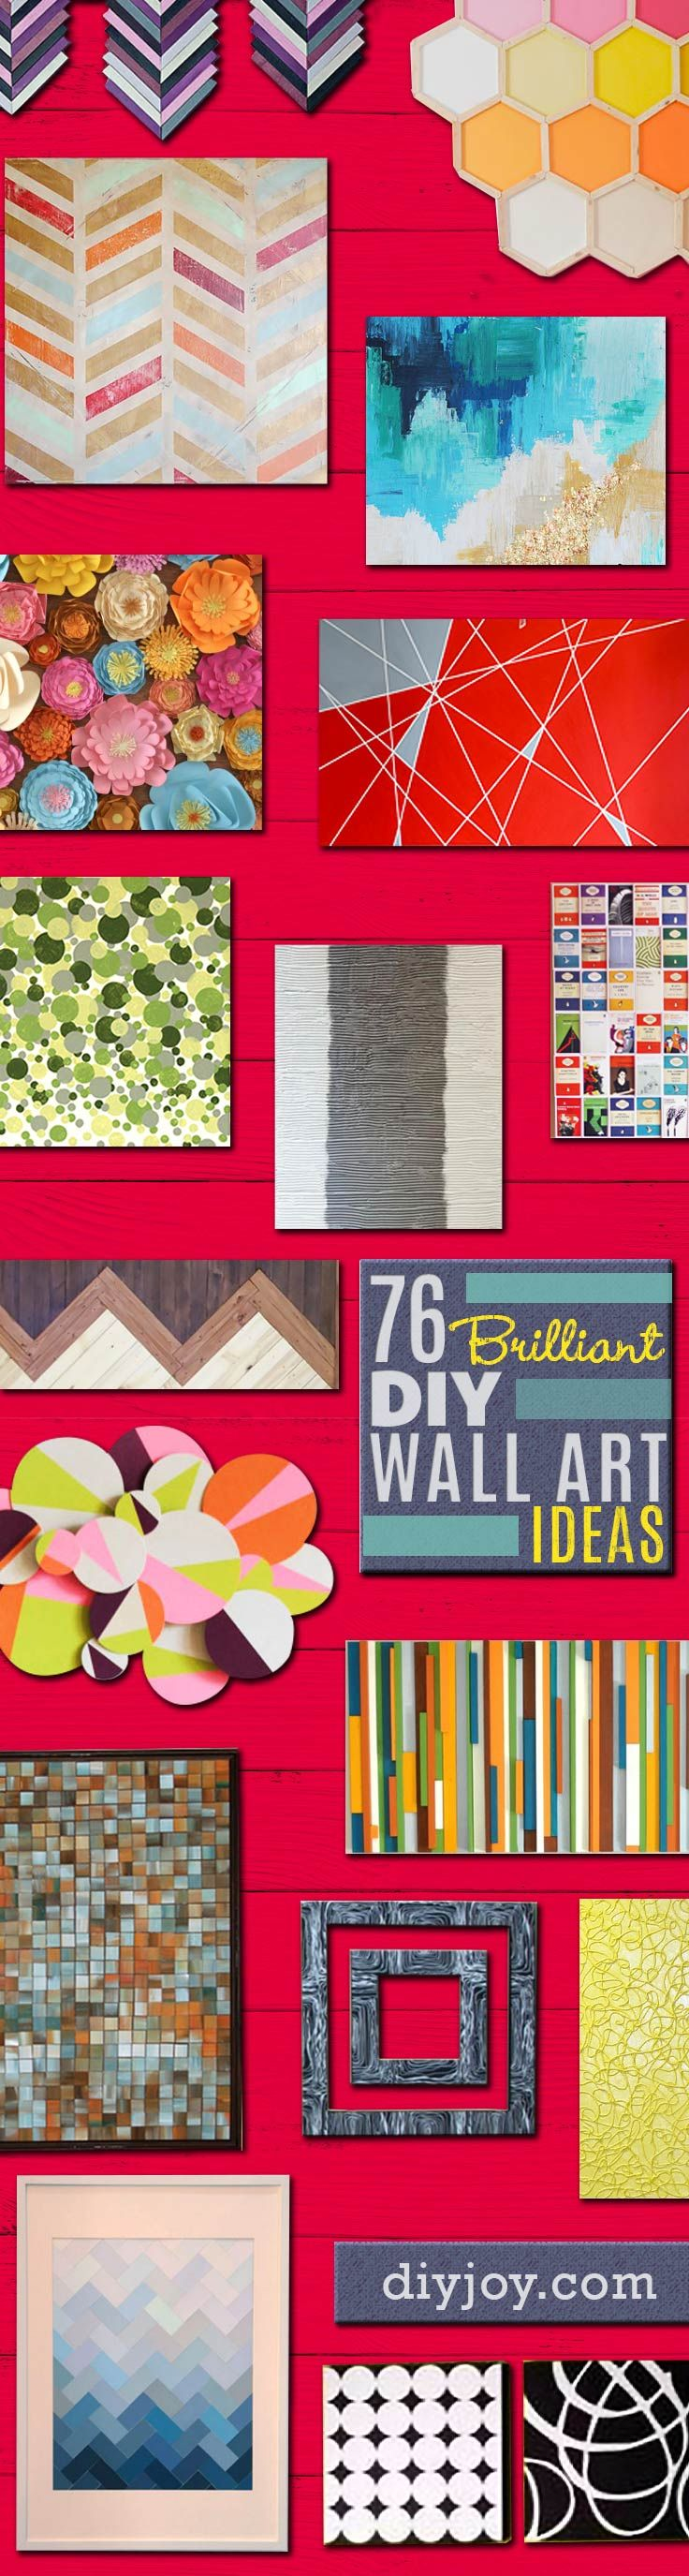 76 Diy Wall Art Ideas For Those Blank Walls Diy Art